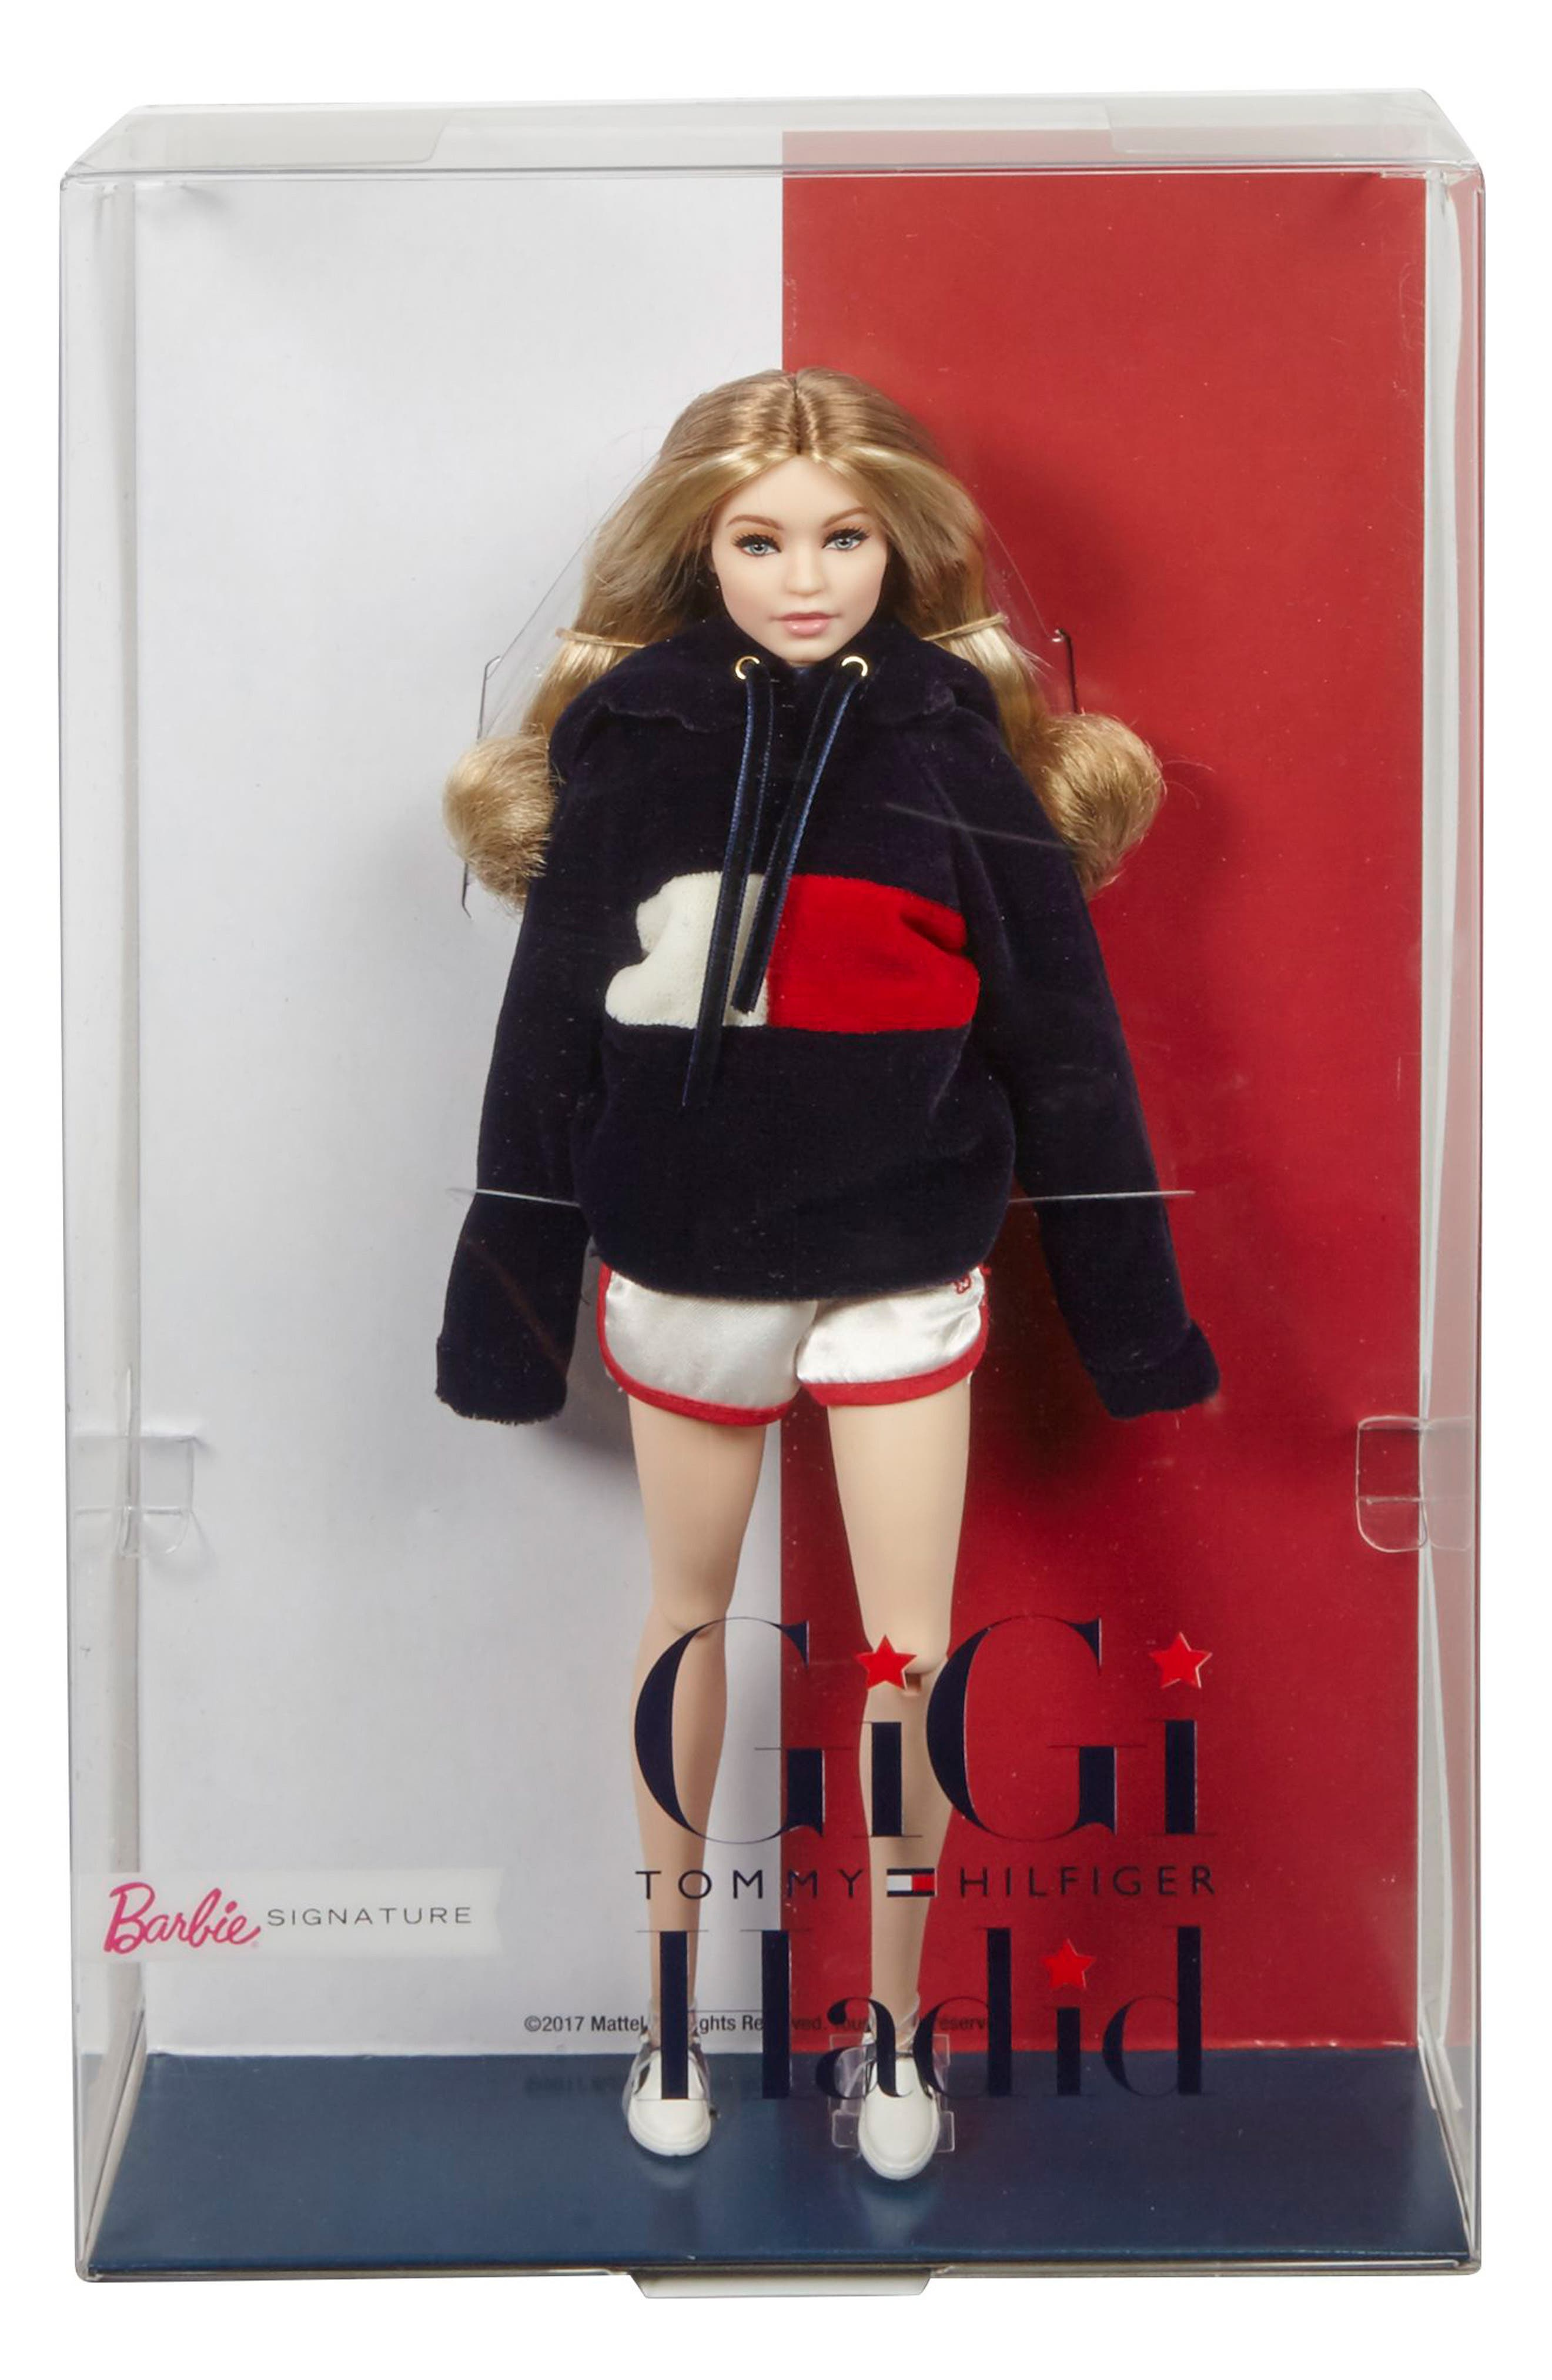 Barbie<sup>®</sup> Signature Tommy Hilfiger x Gigi Hadid Doll,                             Main thumbnail 1, color,